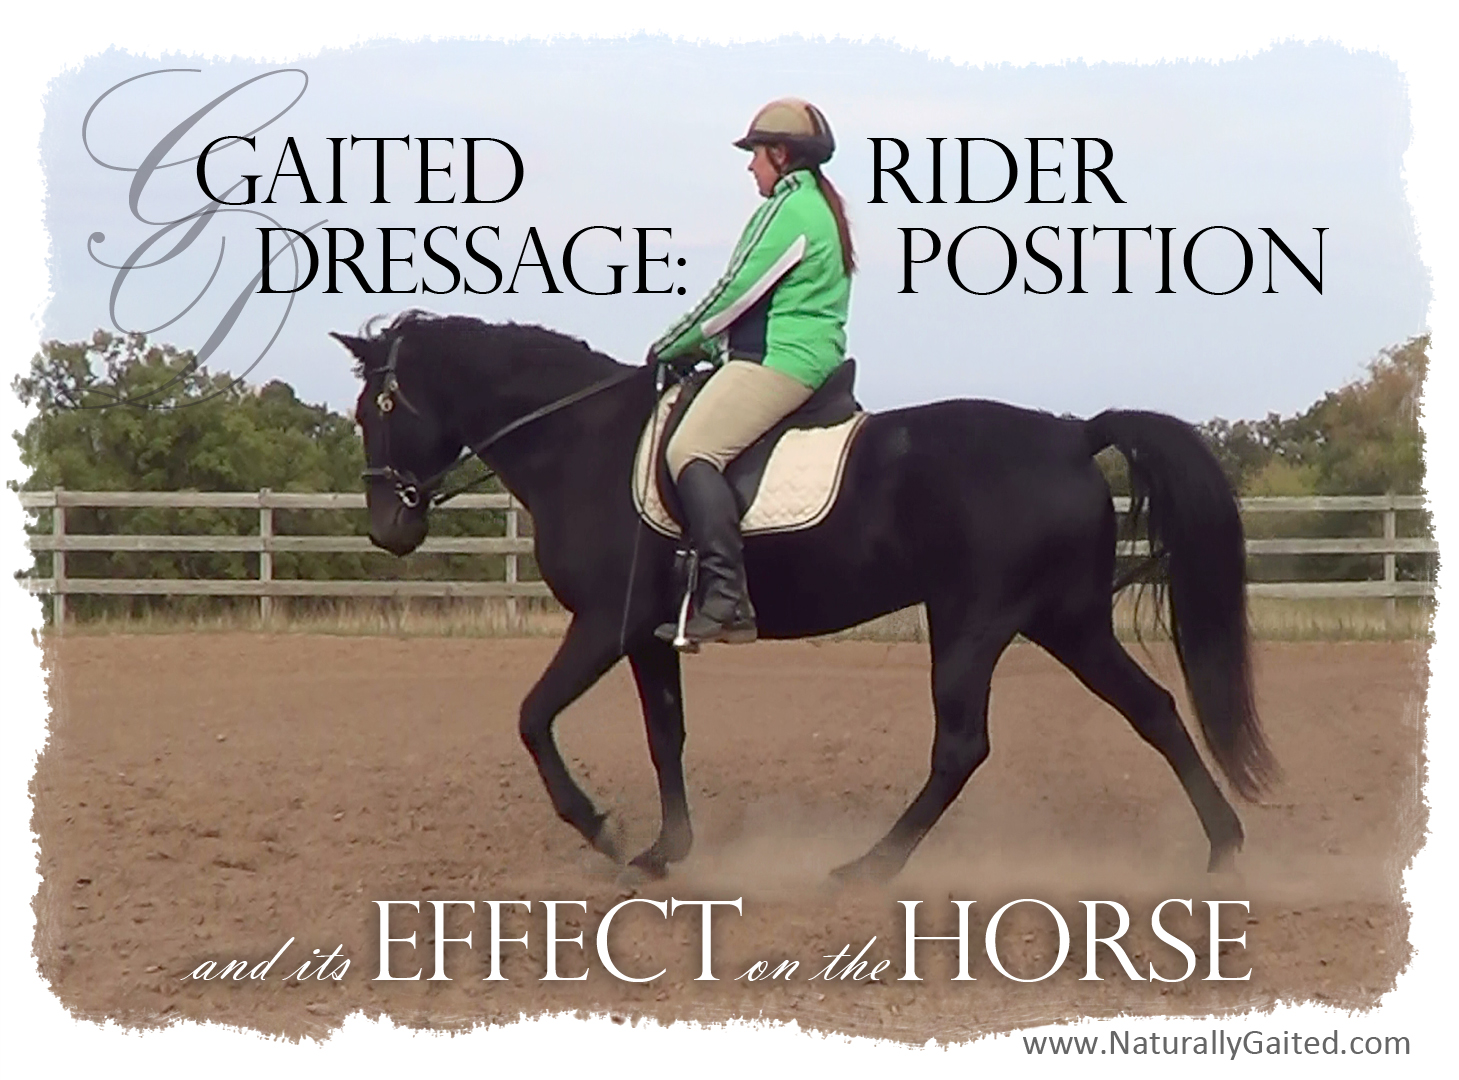 Gaited Dressage: Riding position and its effect on the horse